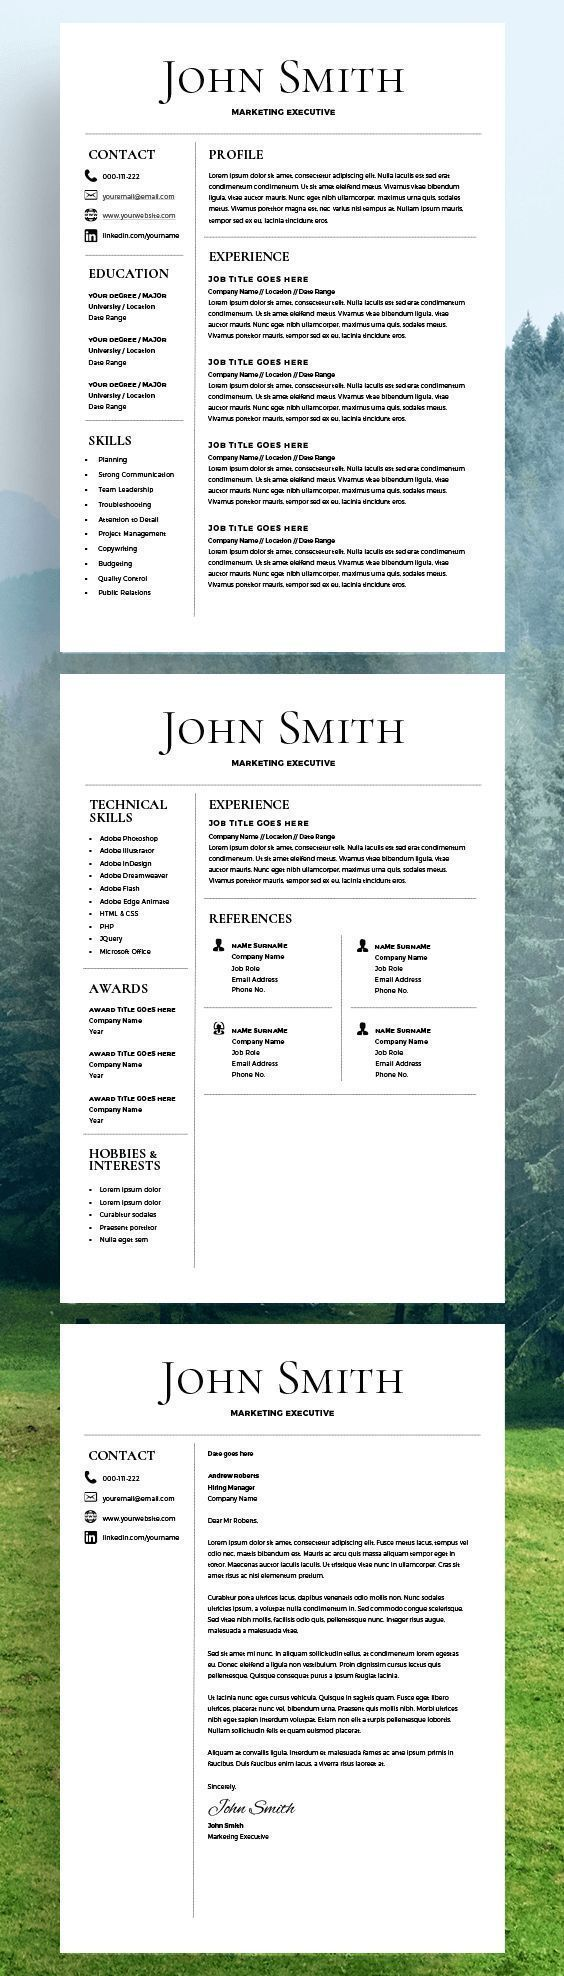 Resume Template CV Template Free